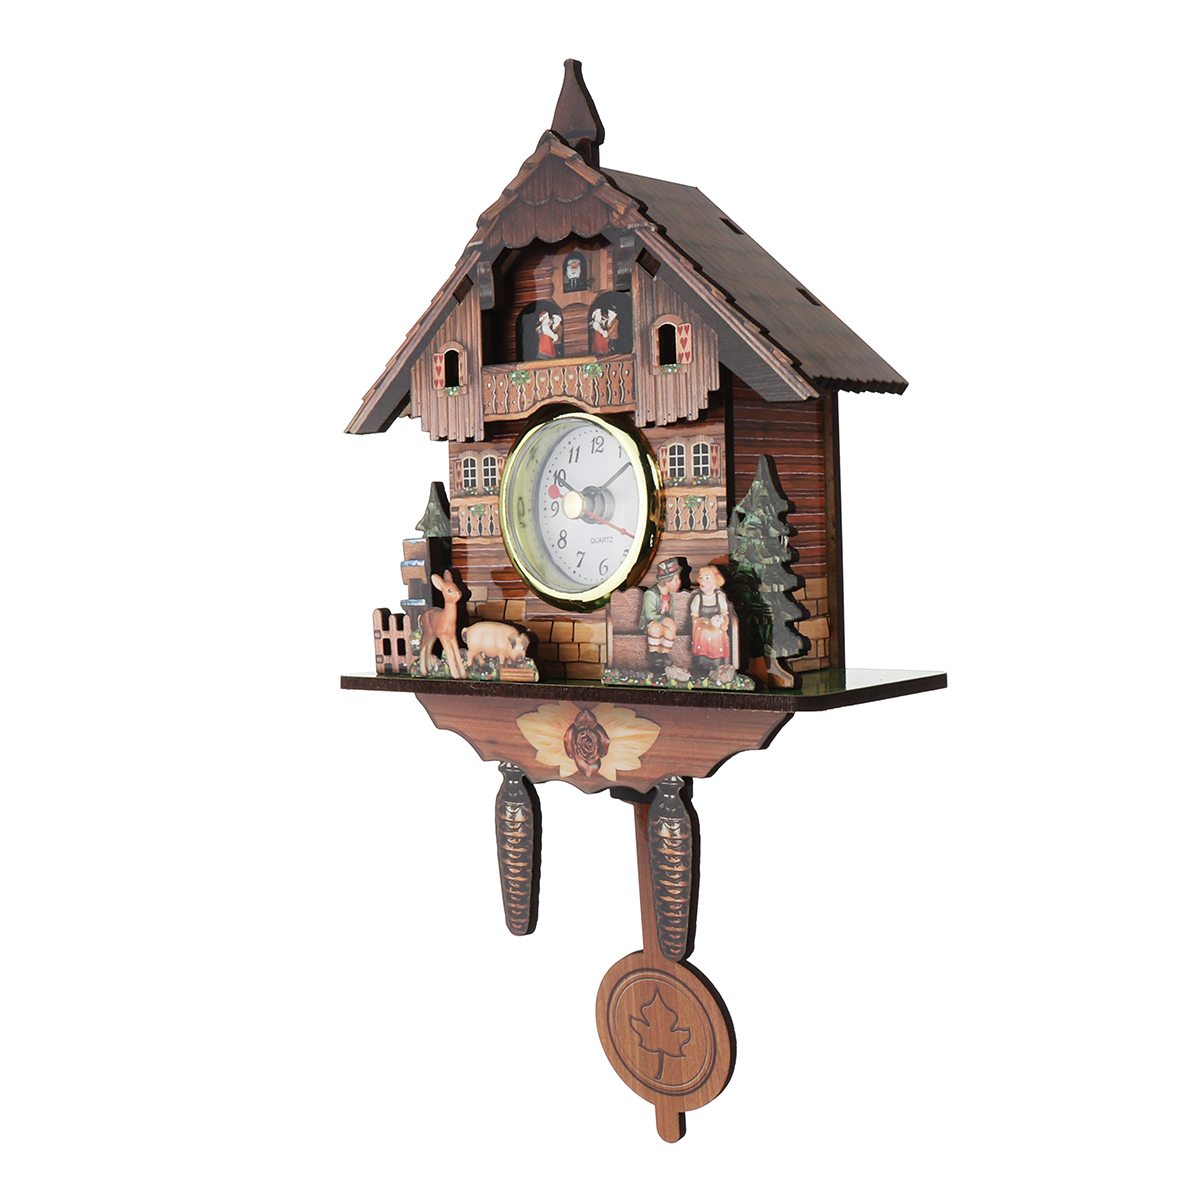 Home Decorat: Cuckoo Clock Mount Wooden Wall Clock Analog Auto